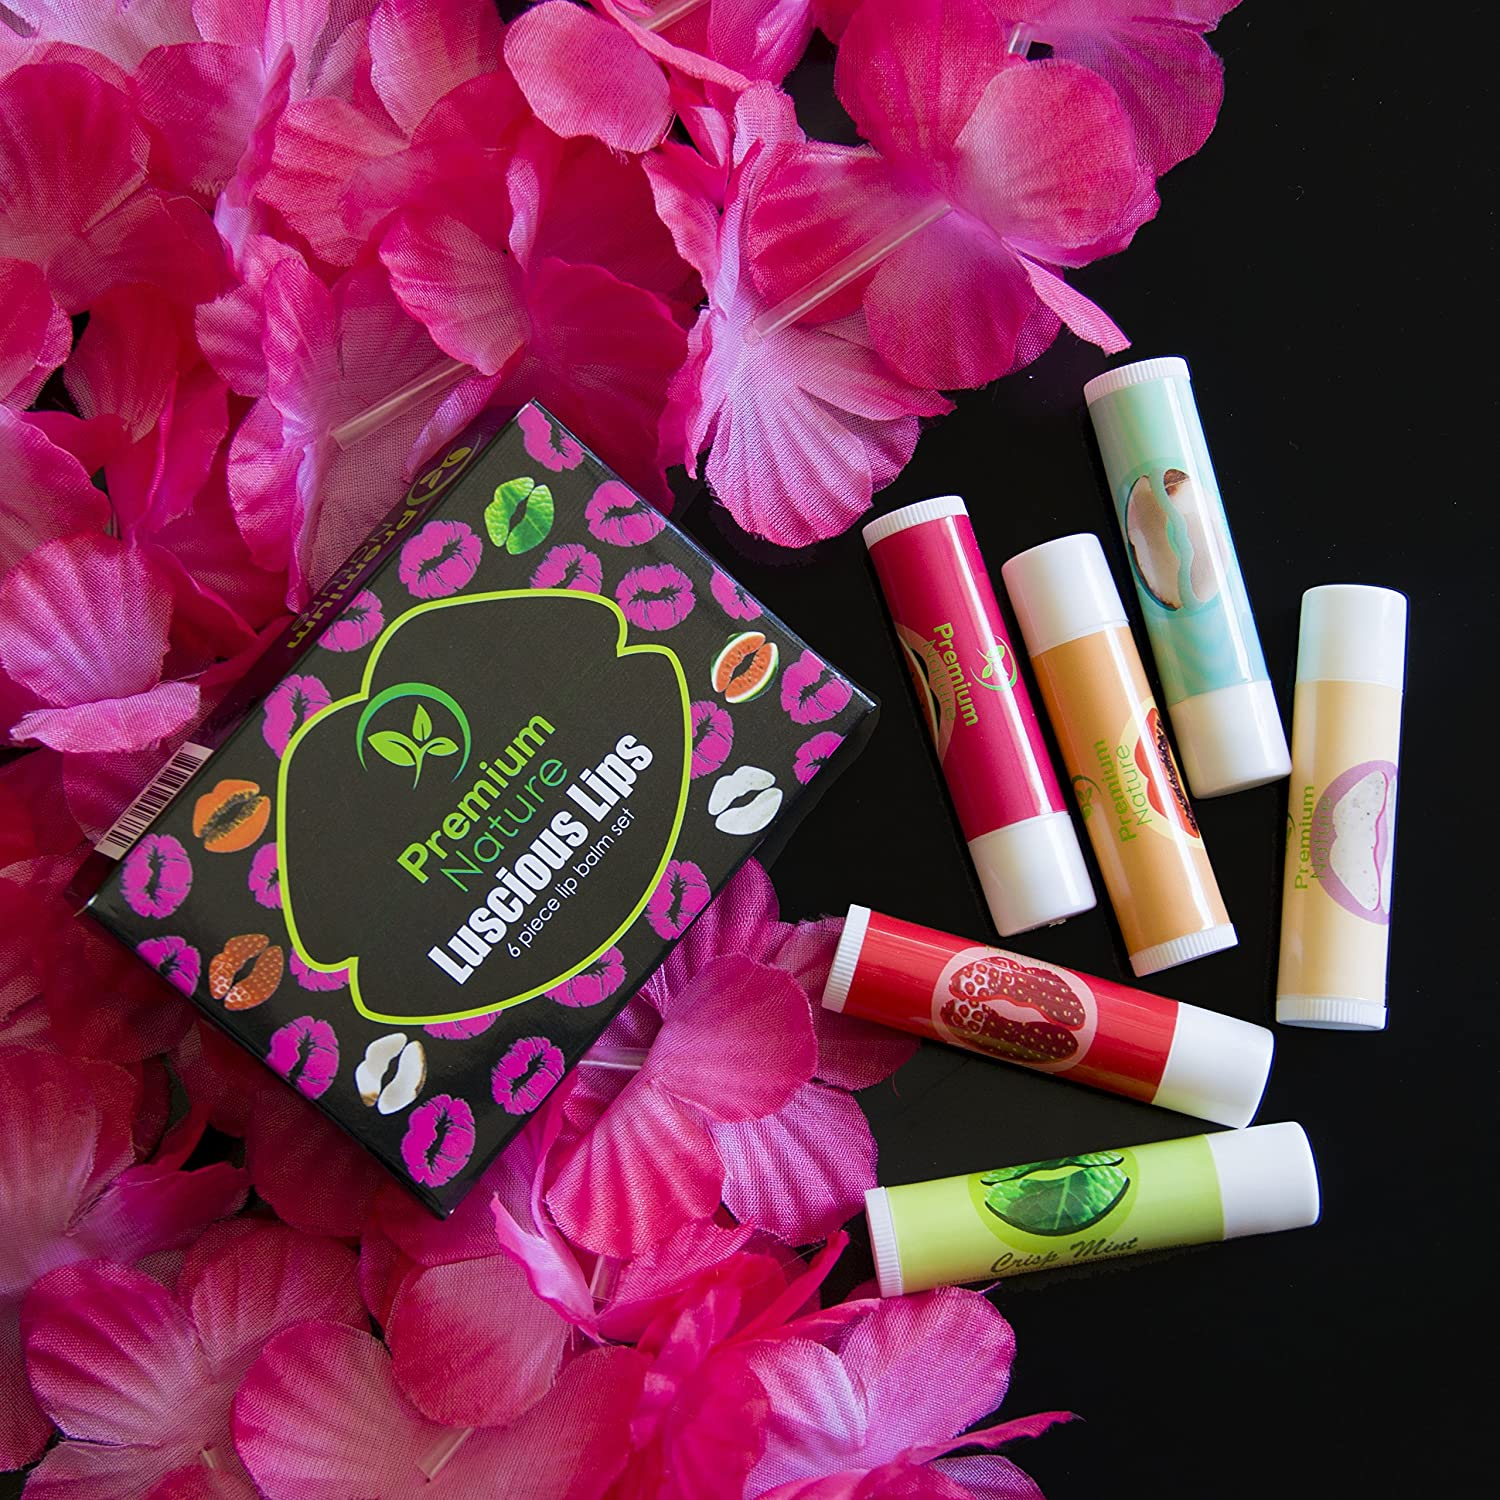 Amazon.com: Lip Balm Variety Gift Set - 6 Assorted Flavors Mint ...